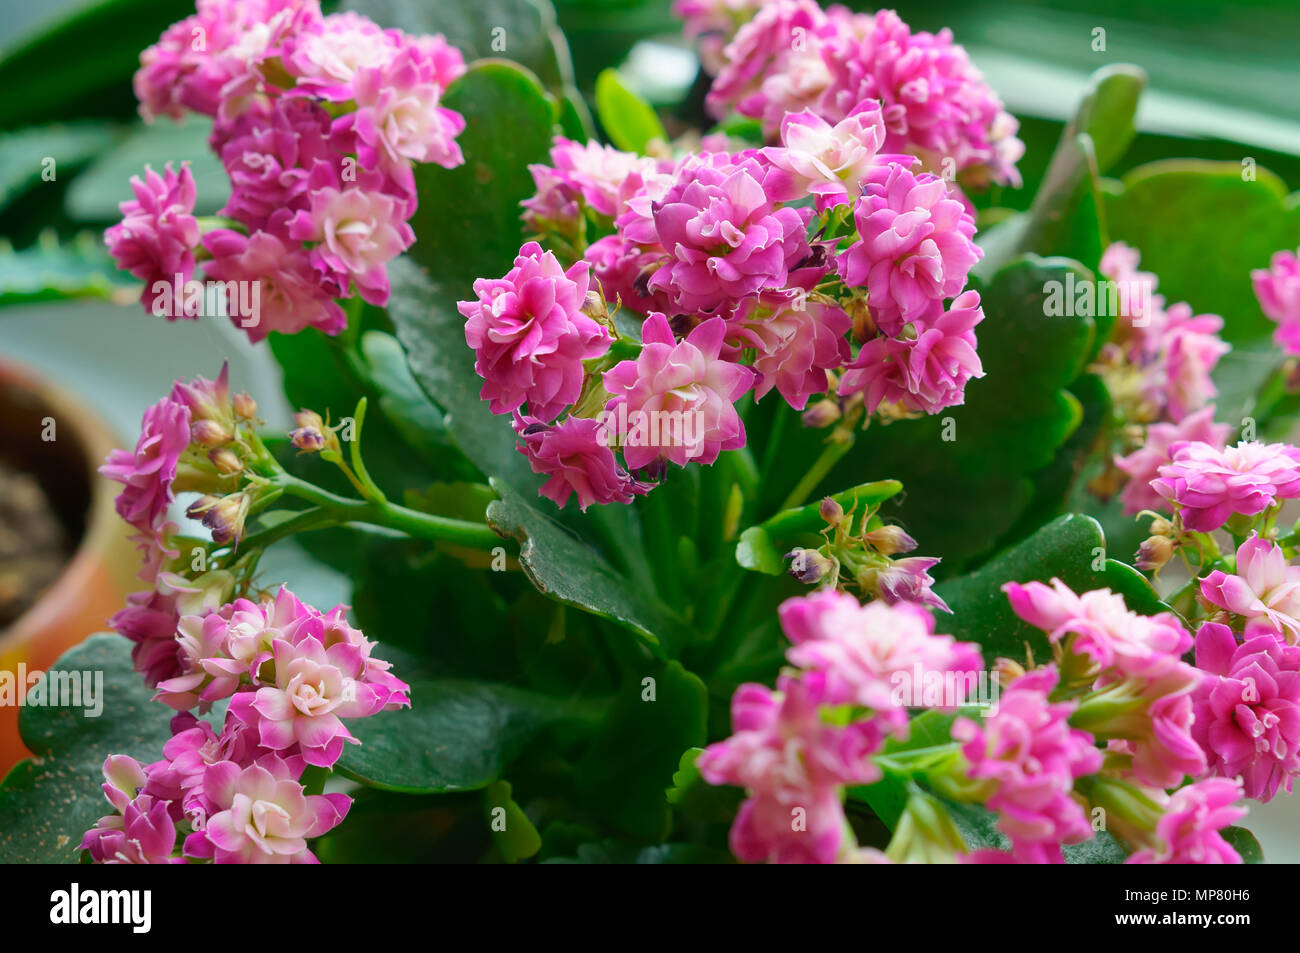 Kalanchoe Potted Plant With Small Pink Flowers And Thick Leaves